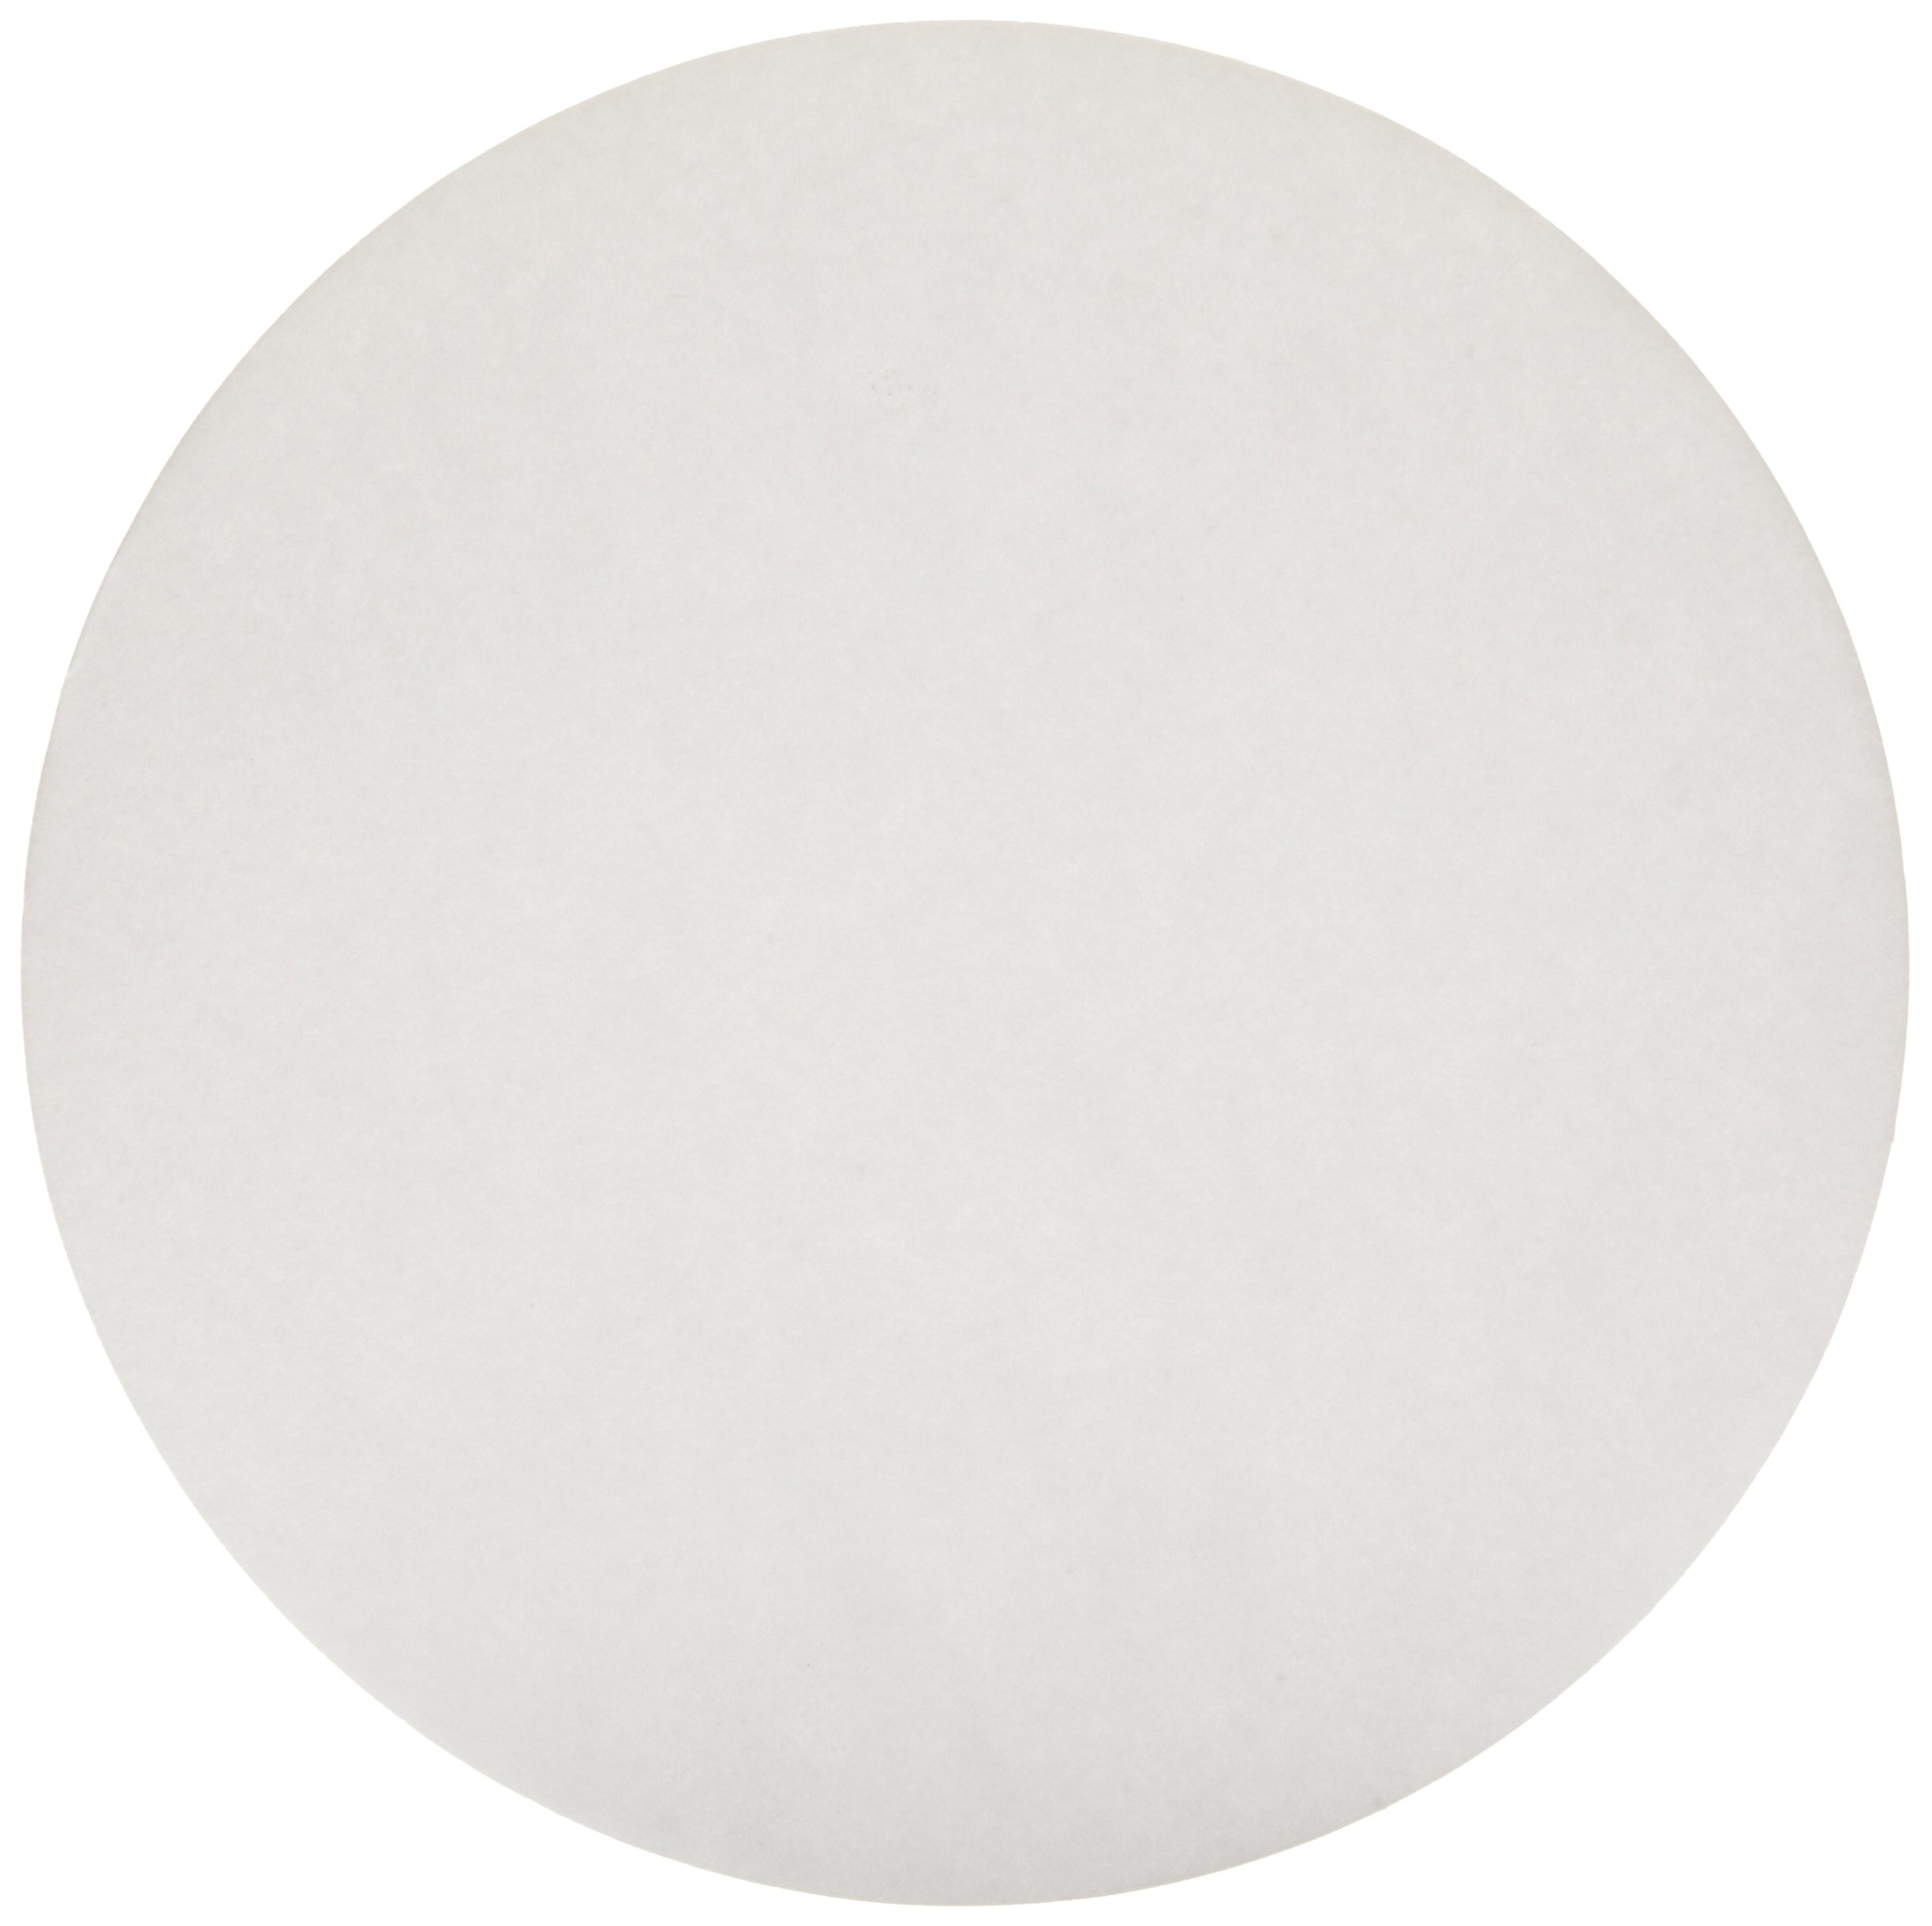 Ahlstrom 6310-0750 Eaton-Dike Filter Paper, 10 Micron, Medium Flow, Grade 631, 7.5cm Diameter (Pack of 100) by Ahlstrom